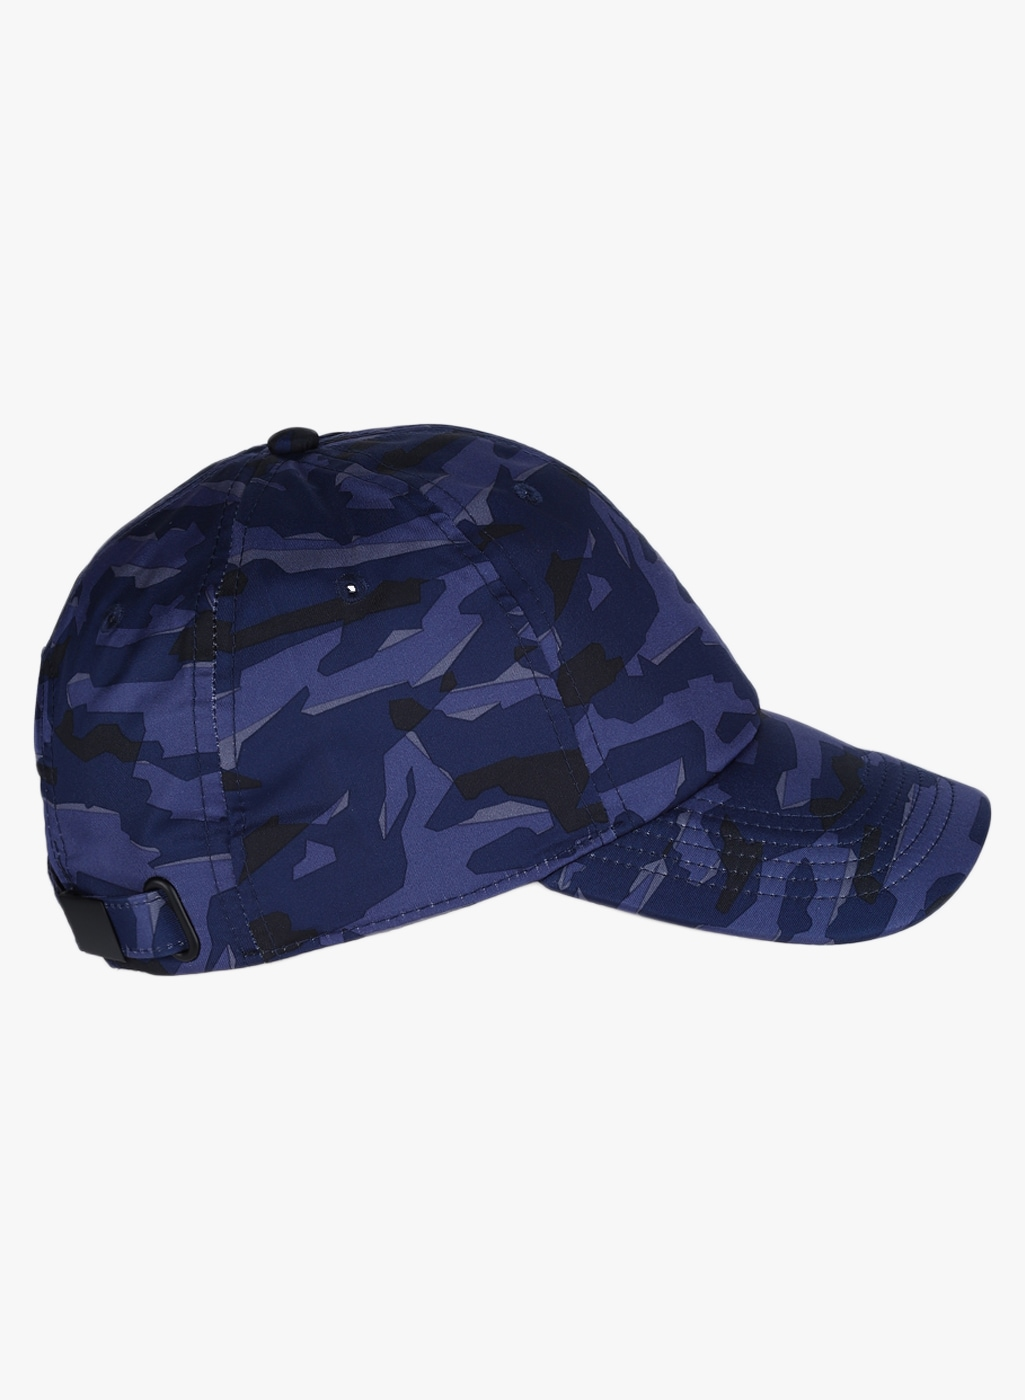 40ae0f610 Men Caps Hats Nike - Buy Men Caps Hats Nike online in India - Jabong